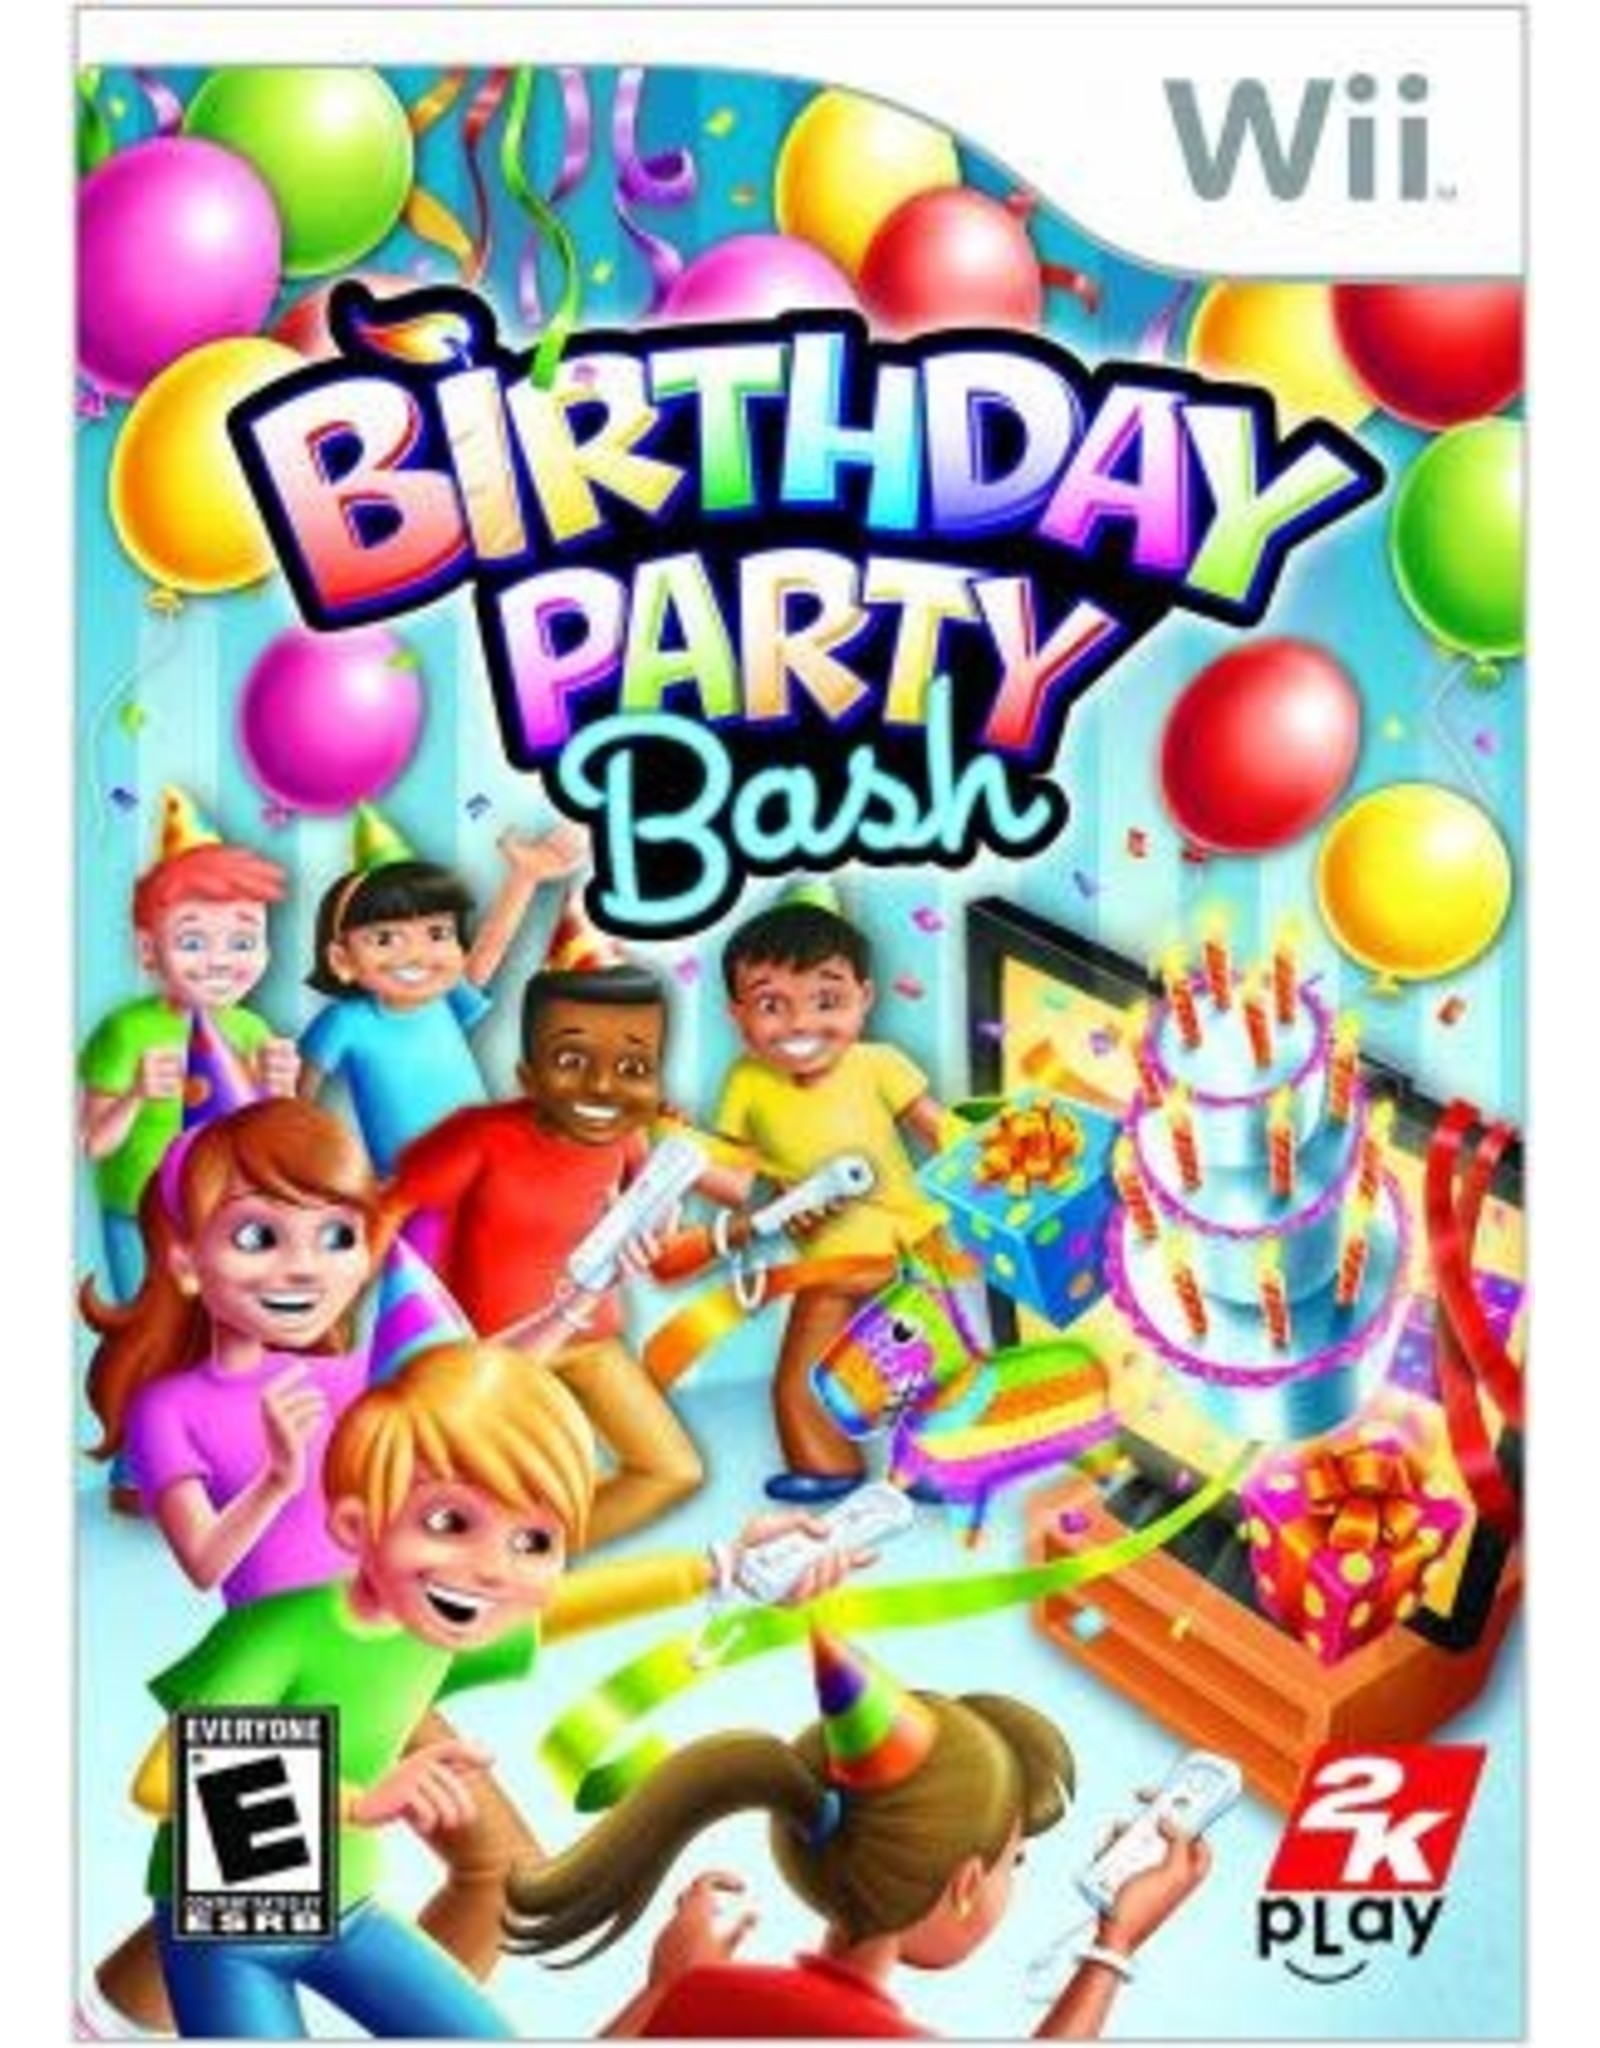 Wii Birthday Party Bash (CIB)